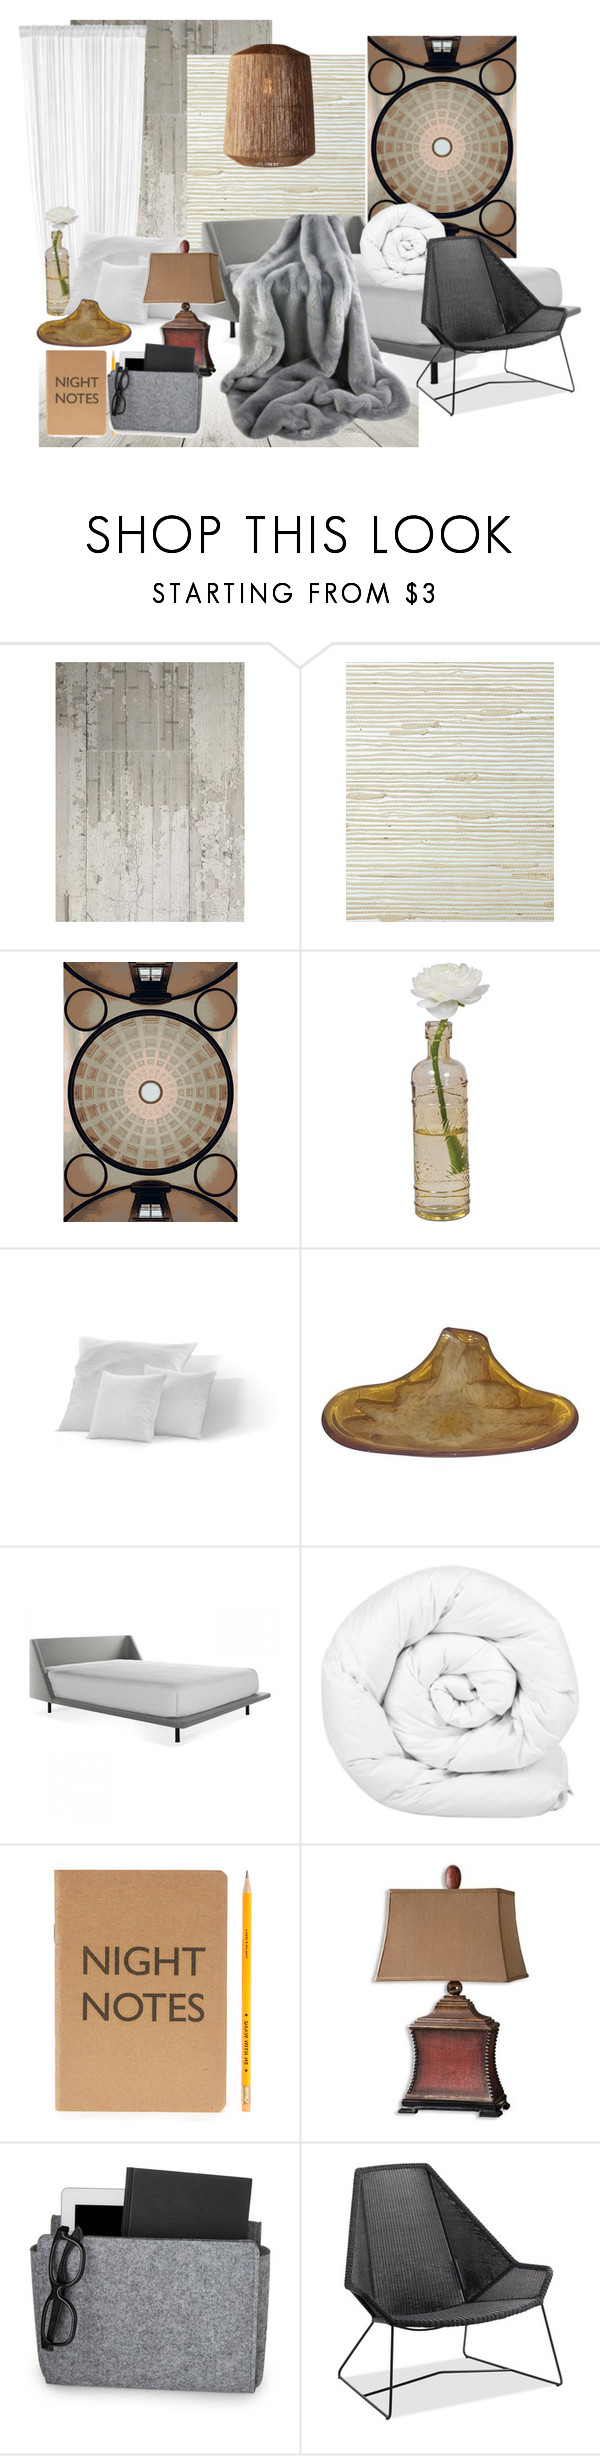 """""""BEDSIDE ESSENTIALS"""" by yesitsme123 ❤ liked on Polyvore featuring interior, interiors, interior design, home, home decor, interior decorating, NLXL, Serena & Lily, Opinion Ciatti and Cultural Intrigue"""